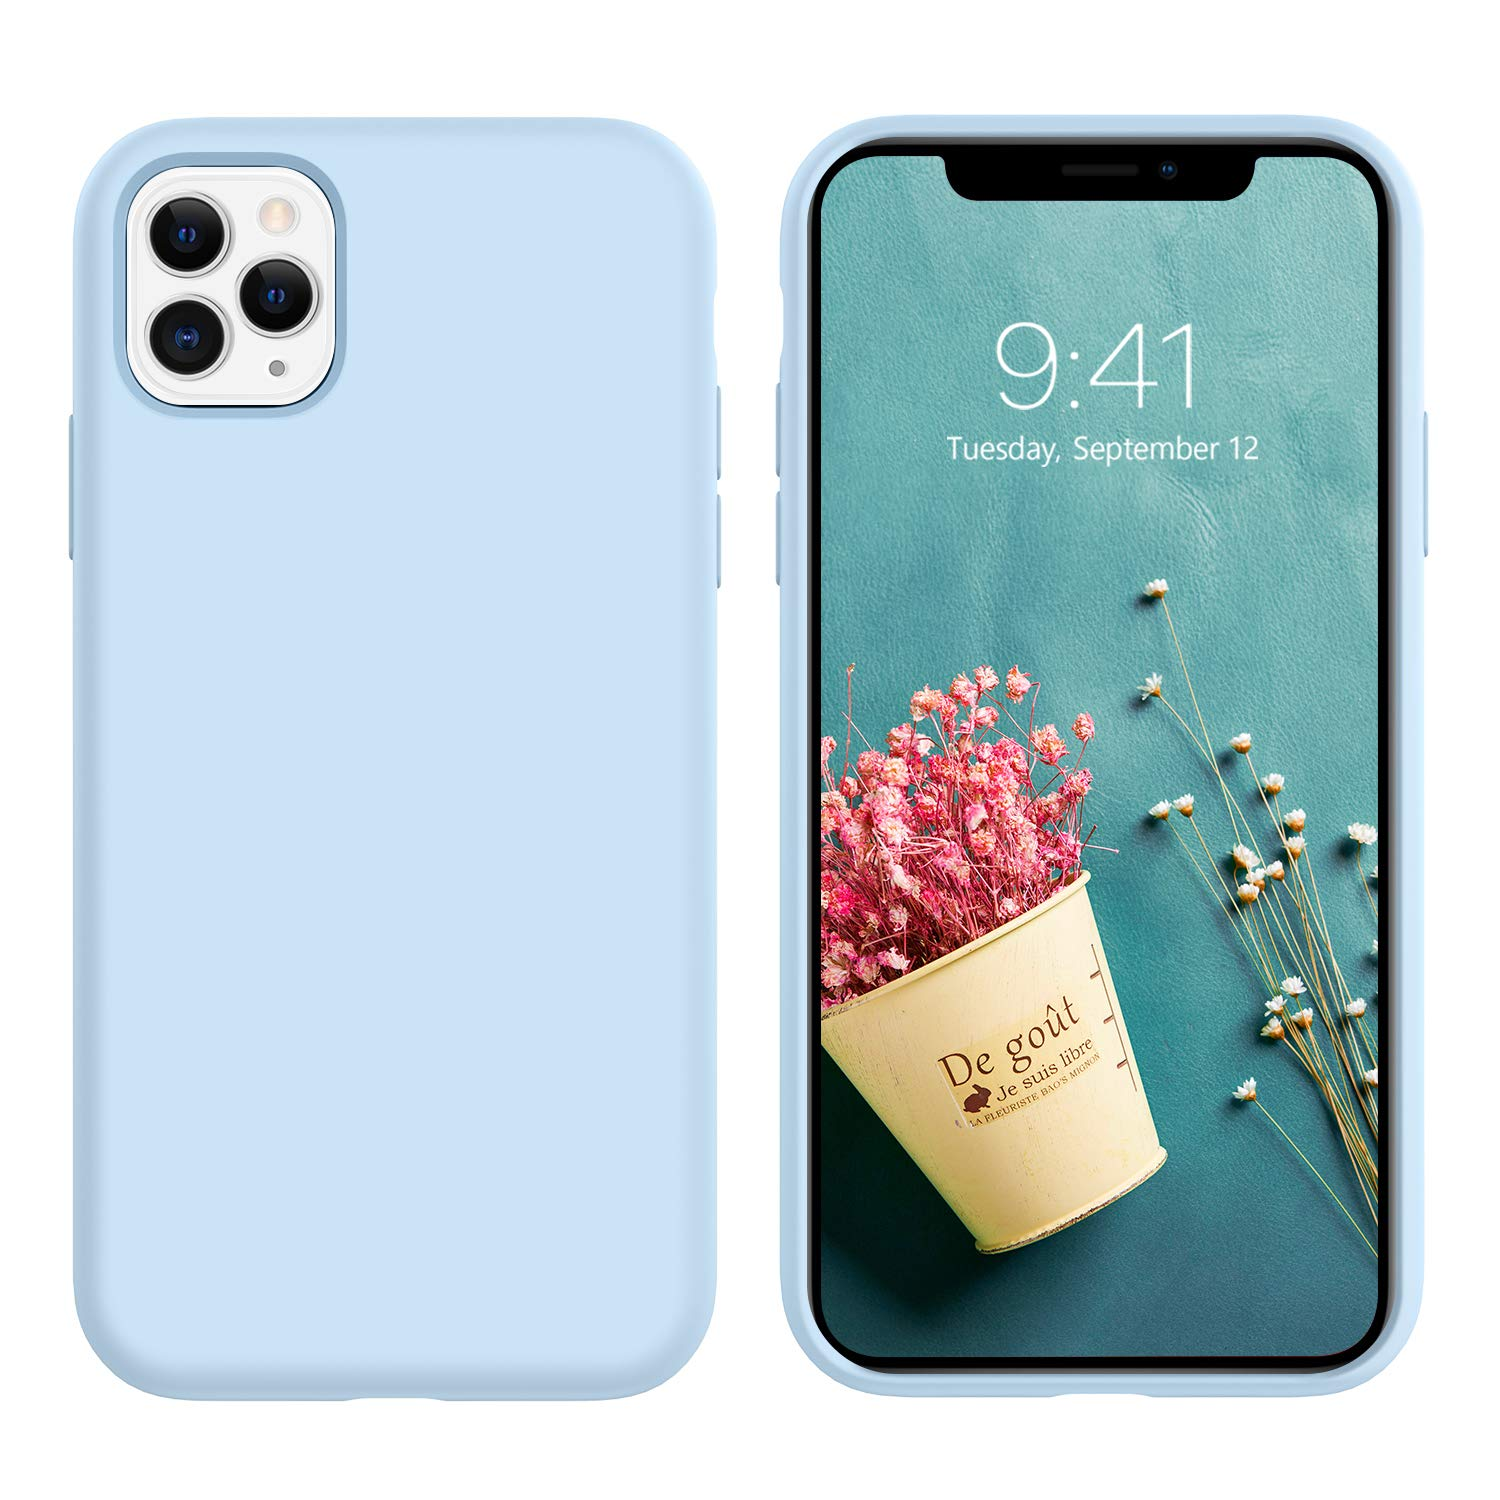 GaoBao iPhone 11 Pro Max Case, Anti-Slip Liquid Silicone Rubber with Soft Microfiber Cushion Shockproof Drop Full Body Protective Phone Cases Cover for iPhone 11 Pro Max 6.5 inch (2019), Light Blue